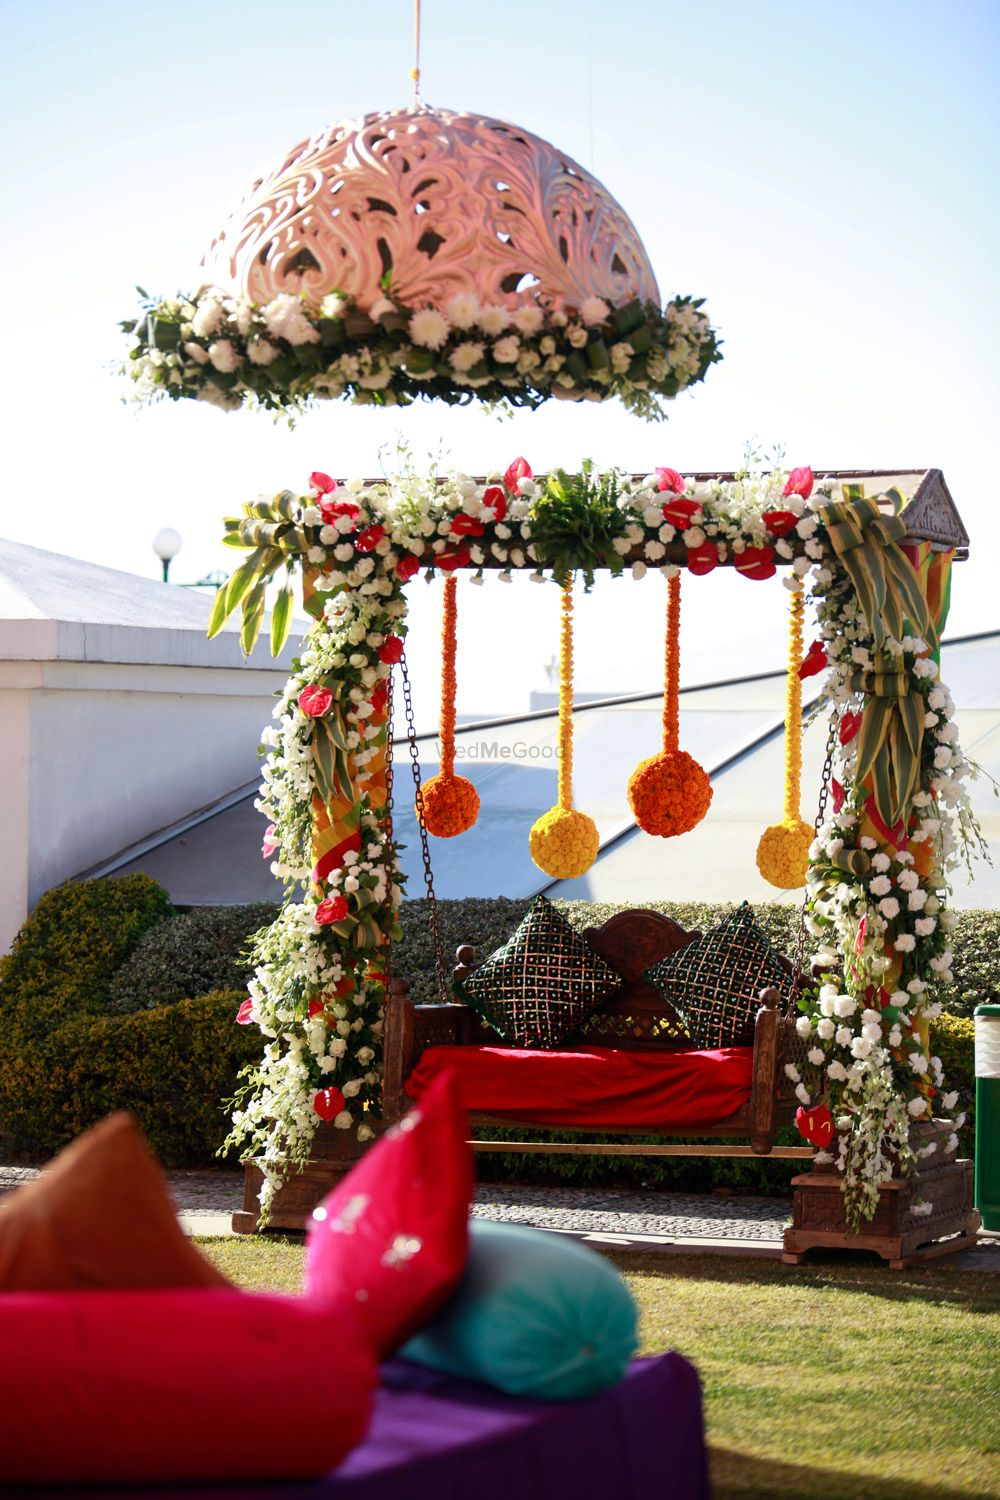 Photo of Colourful Mehendi Decor with Umbrella and Swing